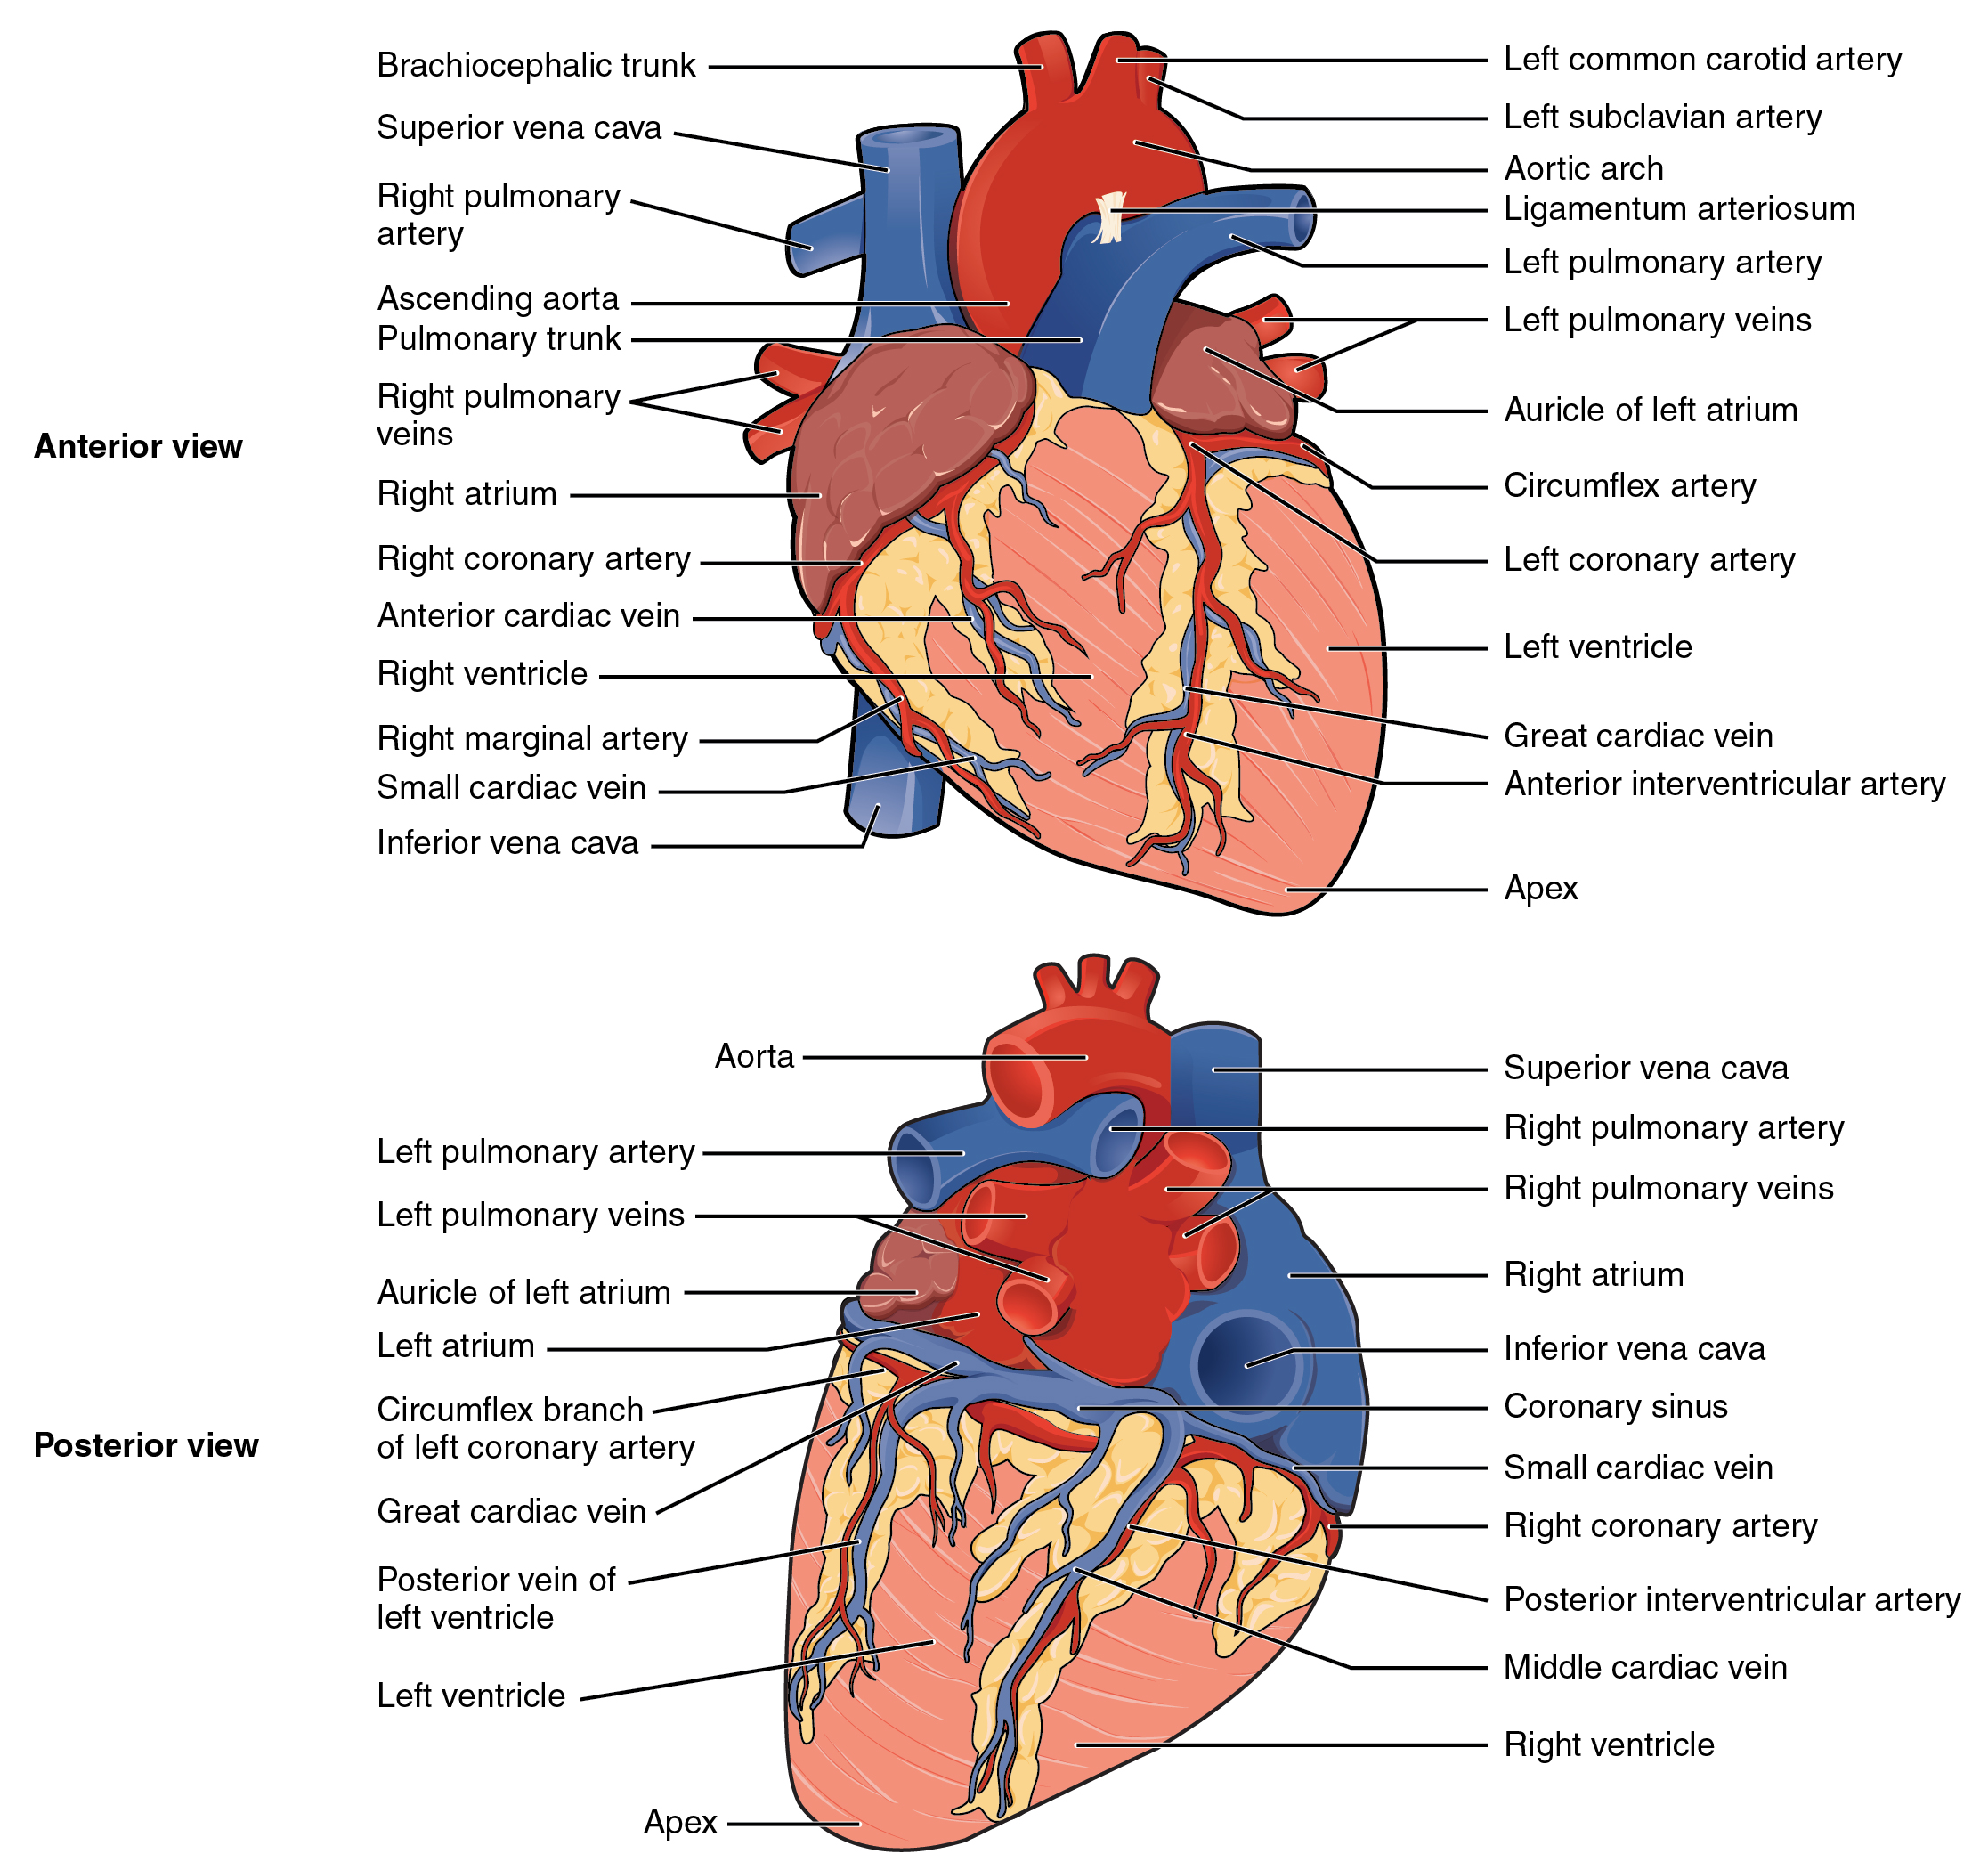 Illustration with labels, showing heart from anterior and posterior views.